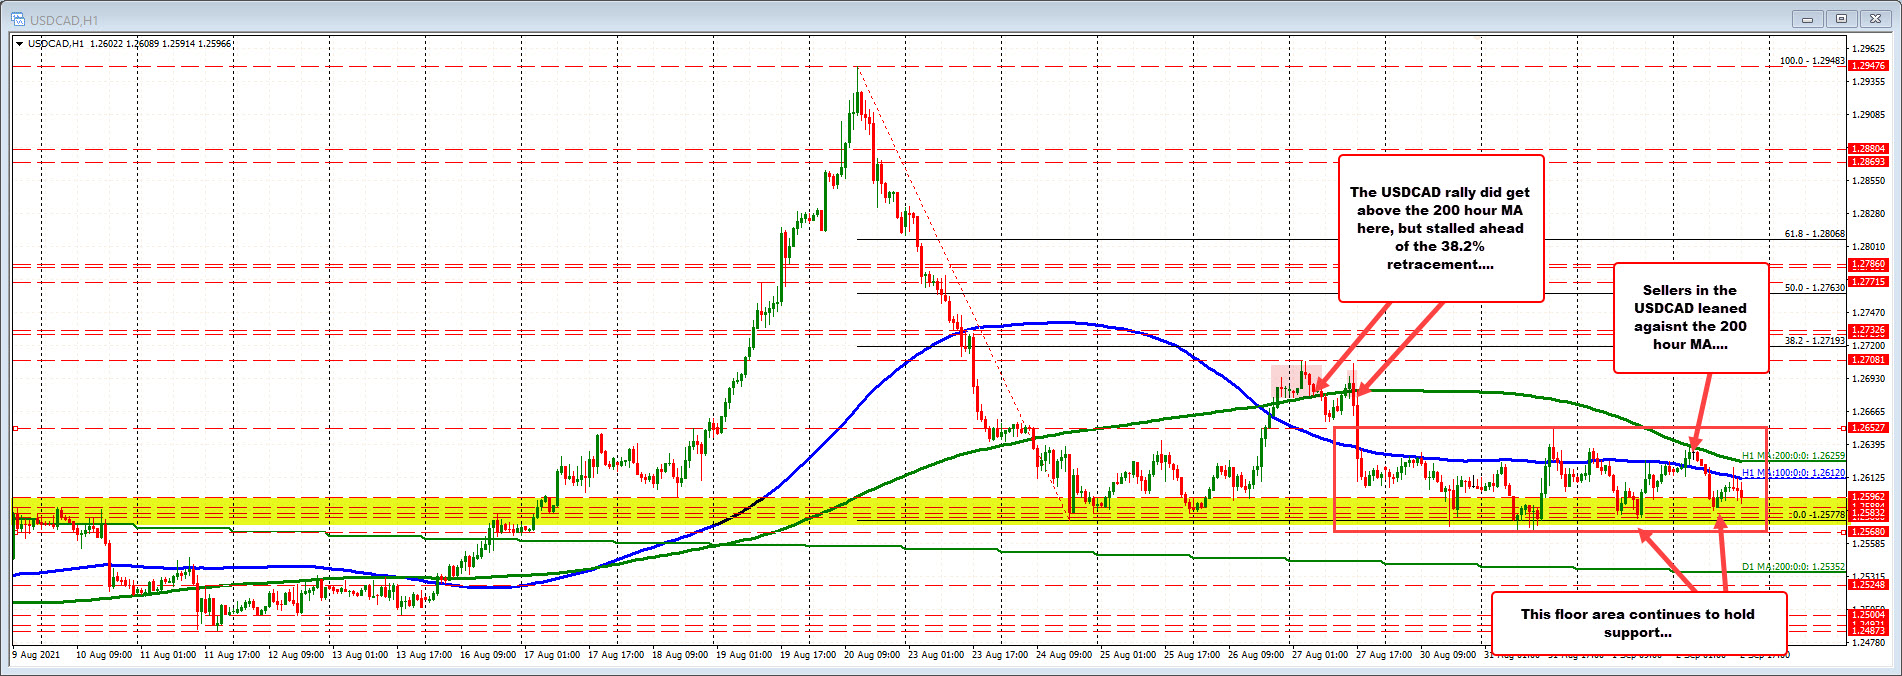 USDCAD remains under hourly moving averages